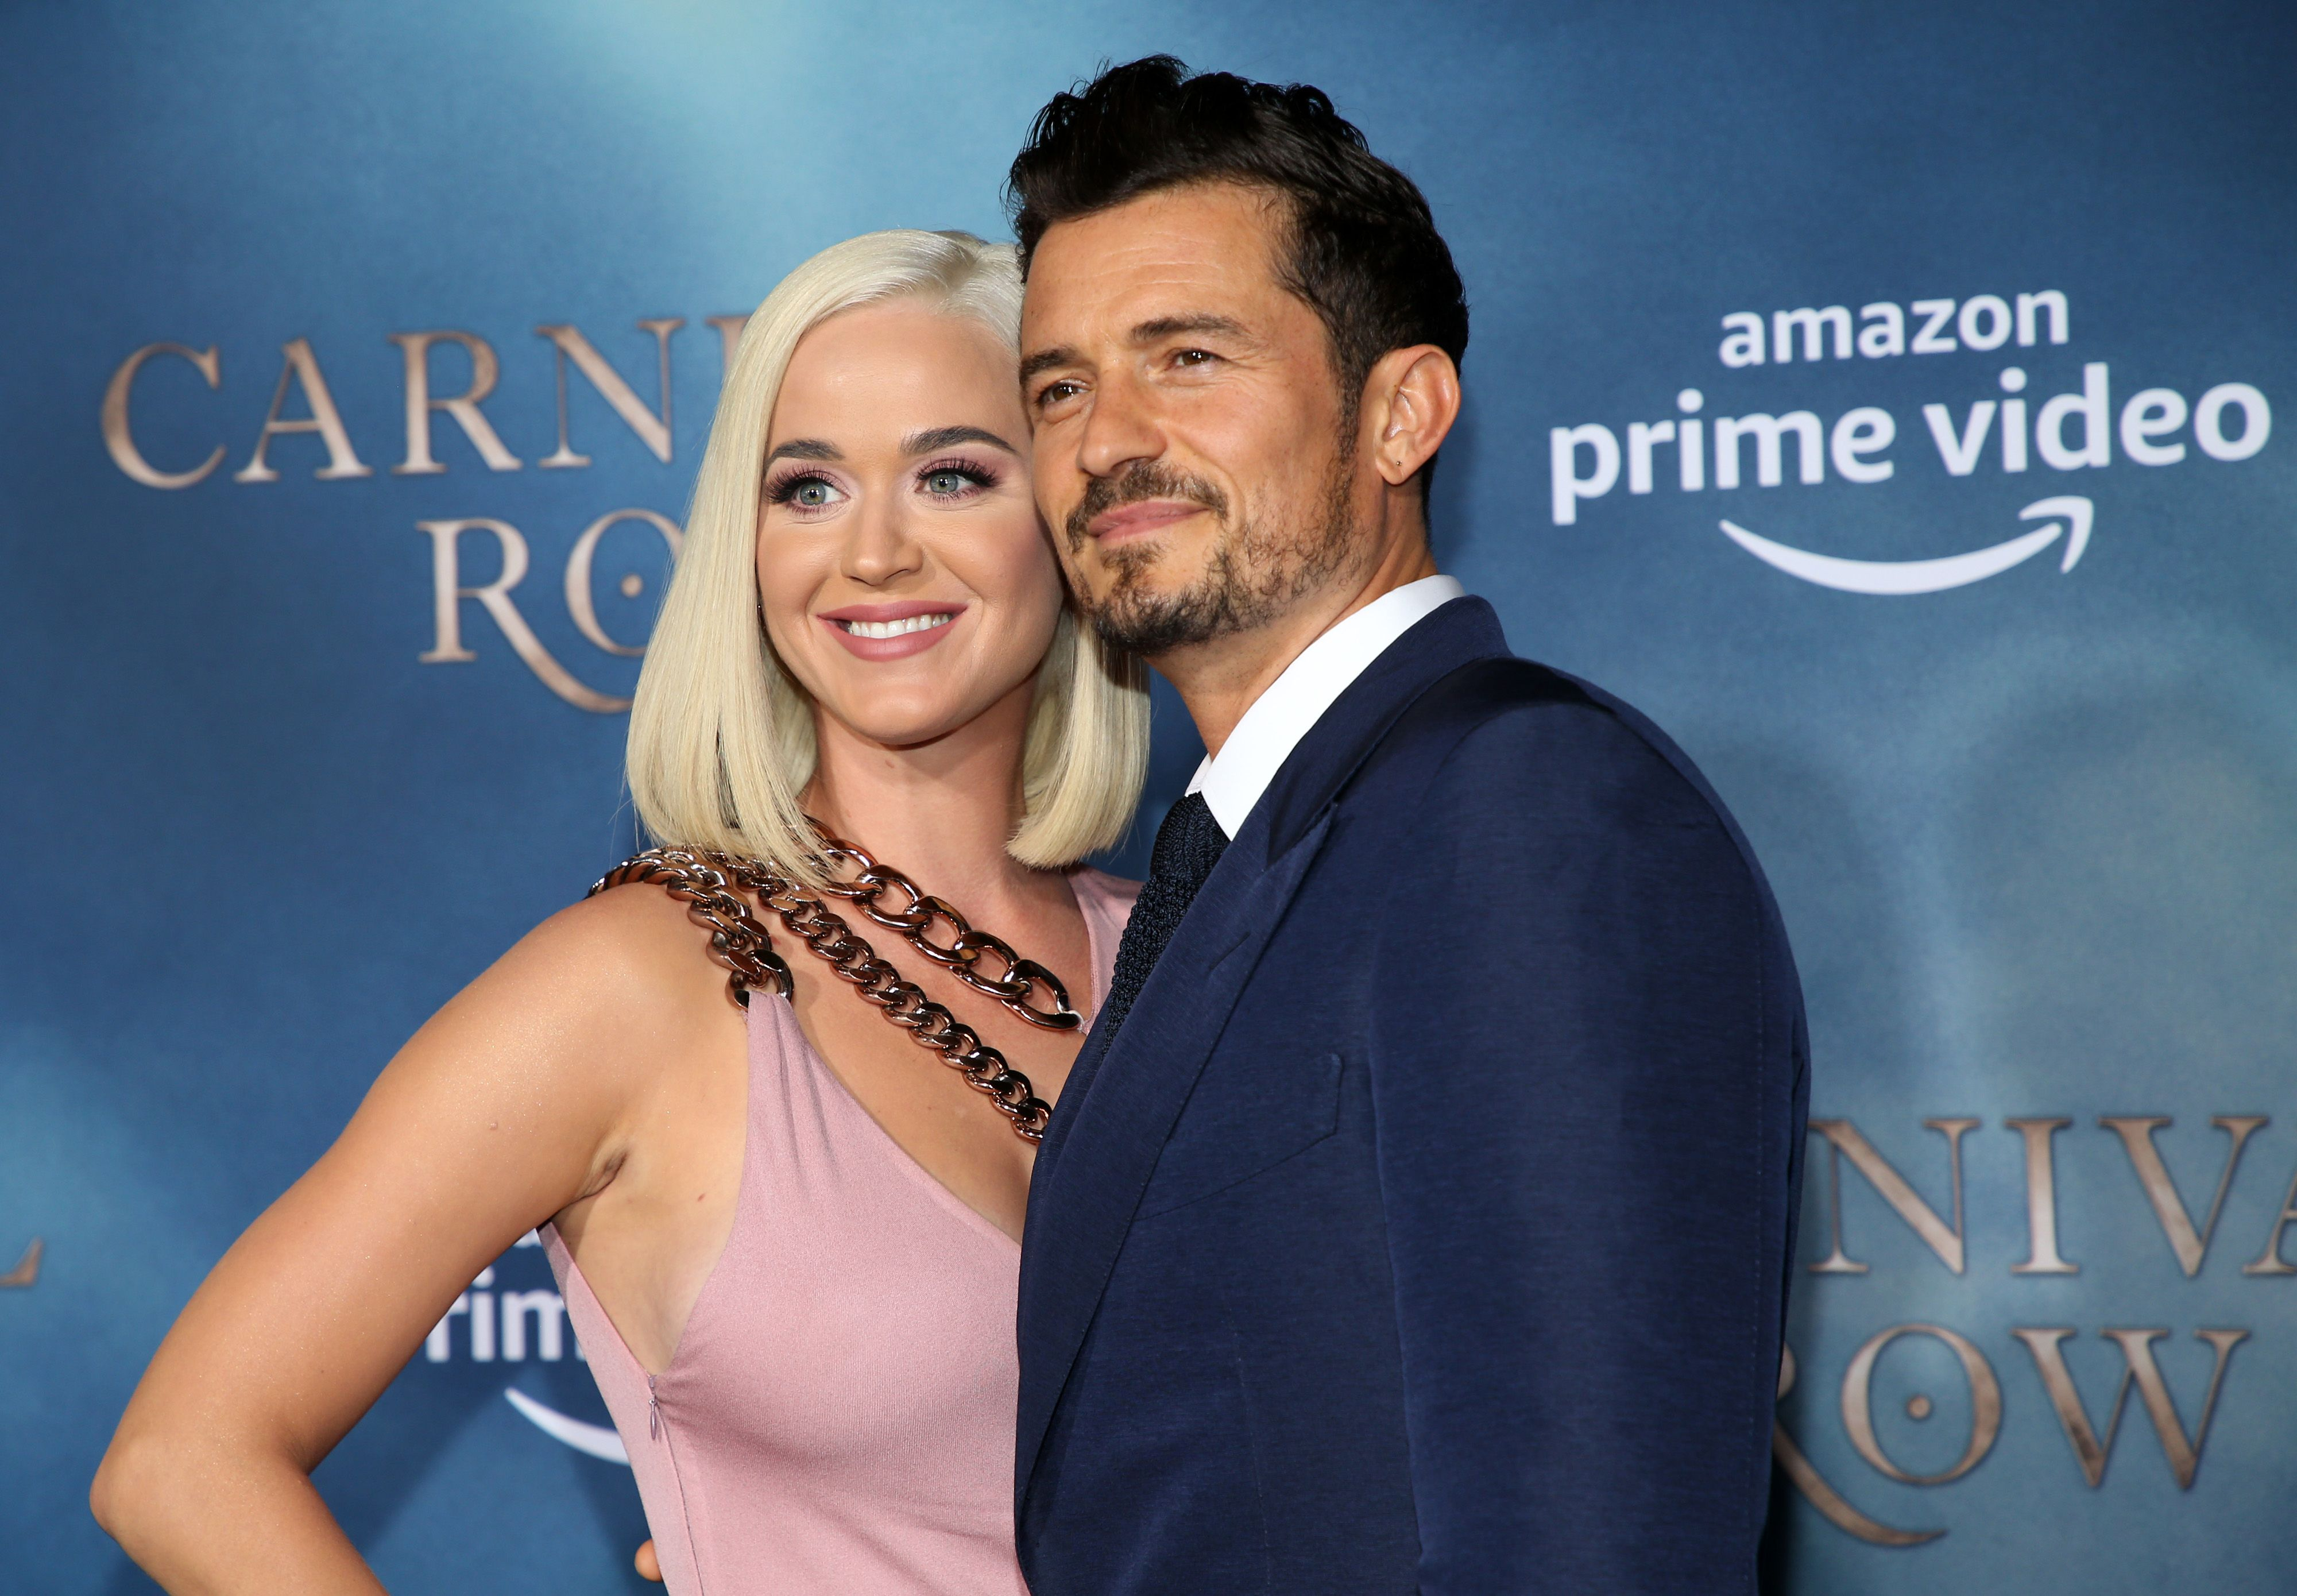 """Katy Perry and Orlando Bloom at the LA premiere of Amazon's """"Carnival Row"""" at TCL Chinese Theatre on August 21, 2019 